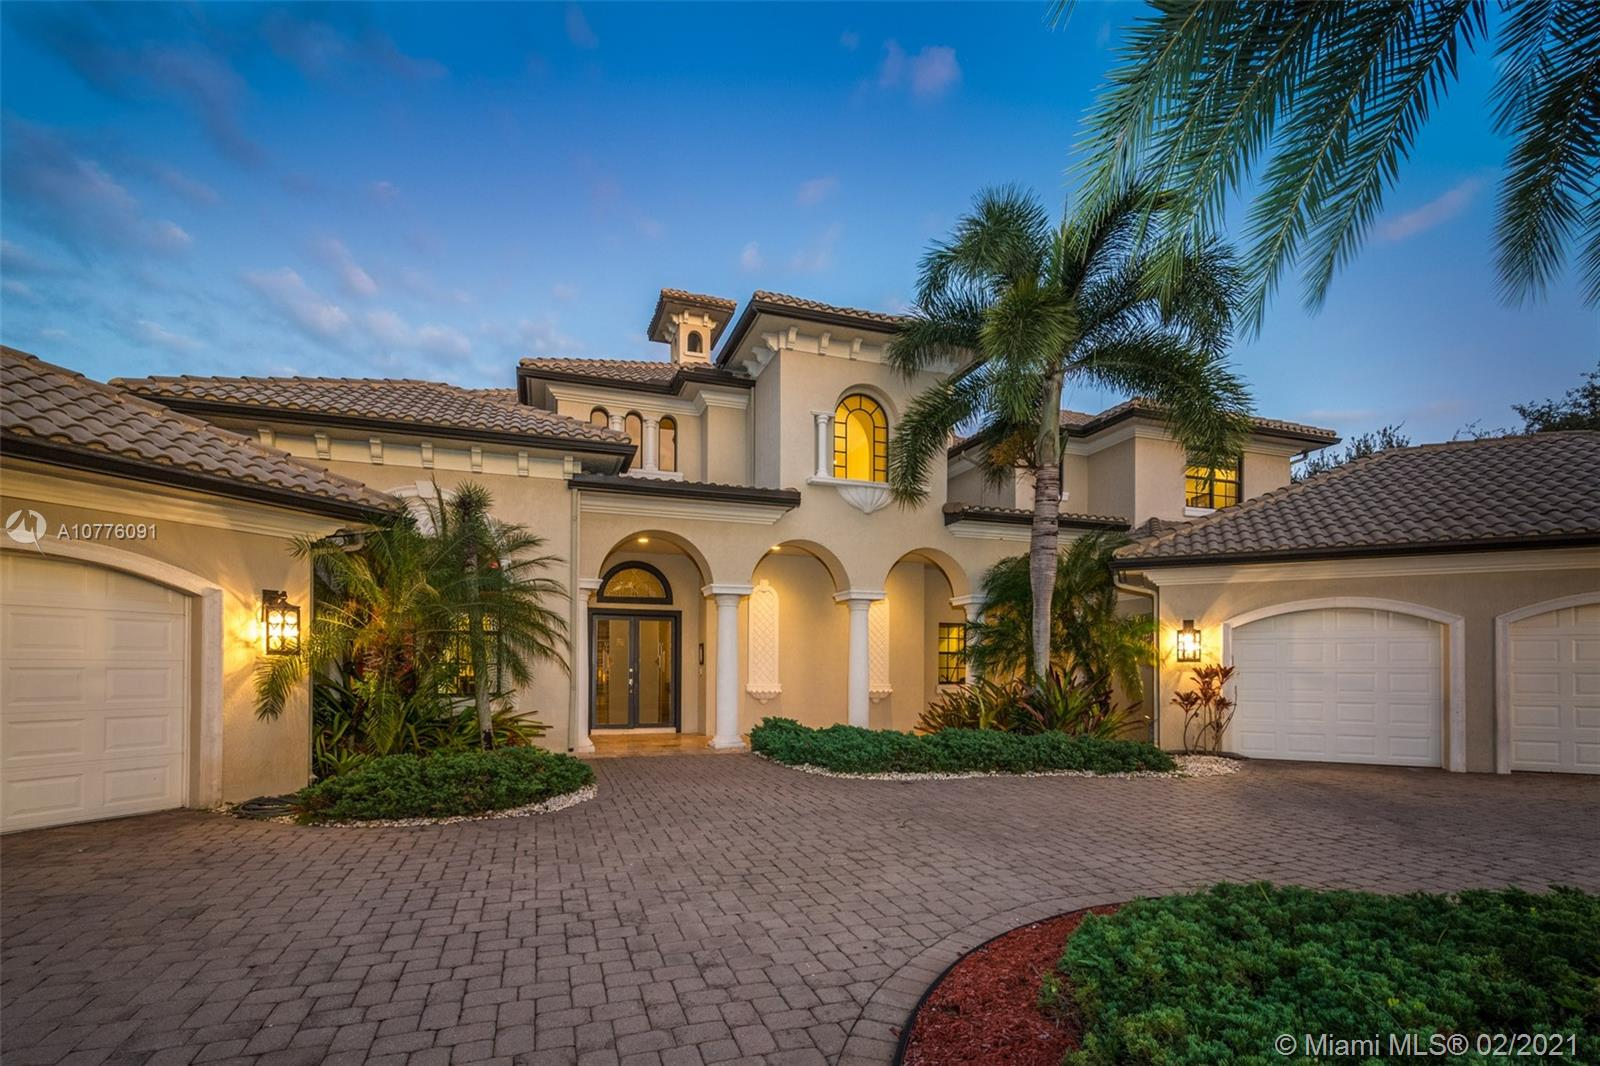 Impressive PRICE REDUCTION. Grand contemporary custom estate home in the heart of Weston in the exclusive gated community of Windmill Reserve. Elegant masterpiece sits on a natural preserve with marble and wood flooring throughout. Master bedroom plus den on first level w/ soaring ceilings and exquisite marble master bath*his/her baths* Jacuzzi* Gourmet kitchen*center island*gas Wolf range*high end subzero refrigerator and appliances. Acre plus fully fenced water lot*resort style travertine pool*fully equipped summer kitchen and entertainment area*heated spa*beach entry* billiard room, home theater, sauna room, bar area and Full impact*Second level with three spacious bedrooms plus two lofts*https://player.vimeo.com/video/344826222?autoplay=1&loop=1&title=0&byline=0&portrait=0